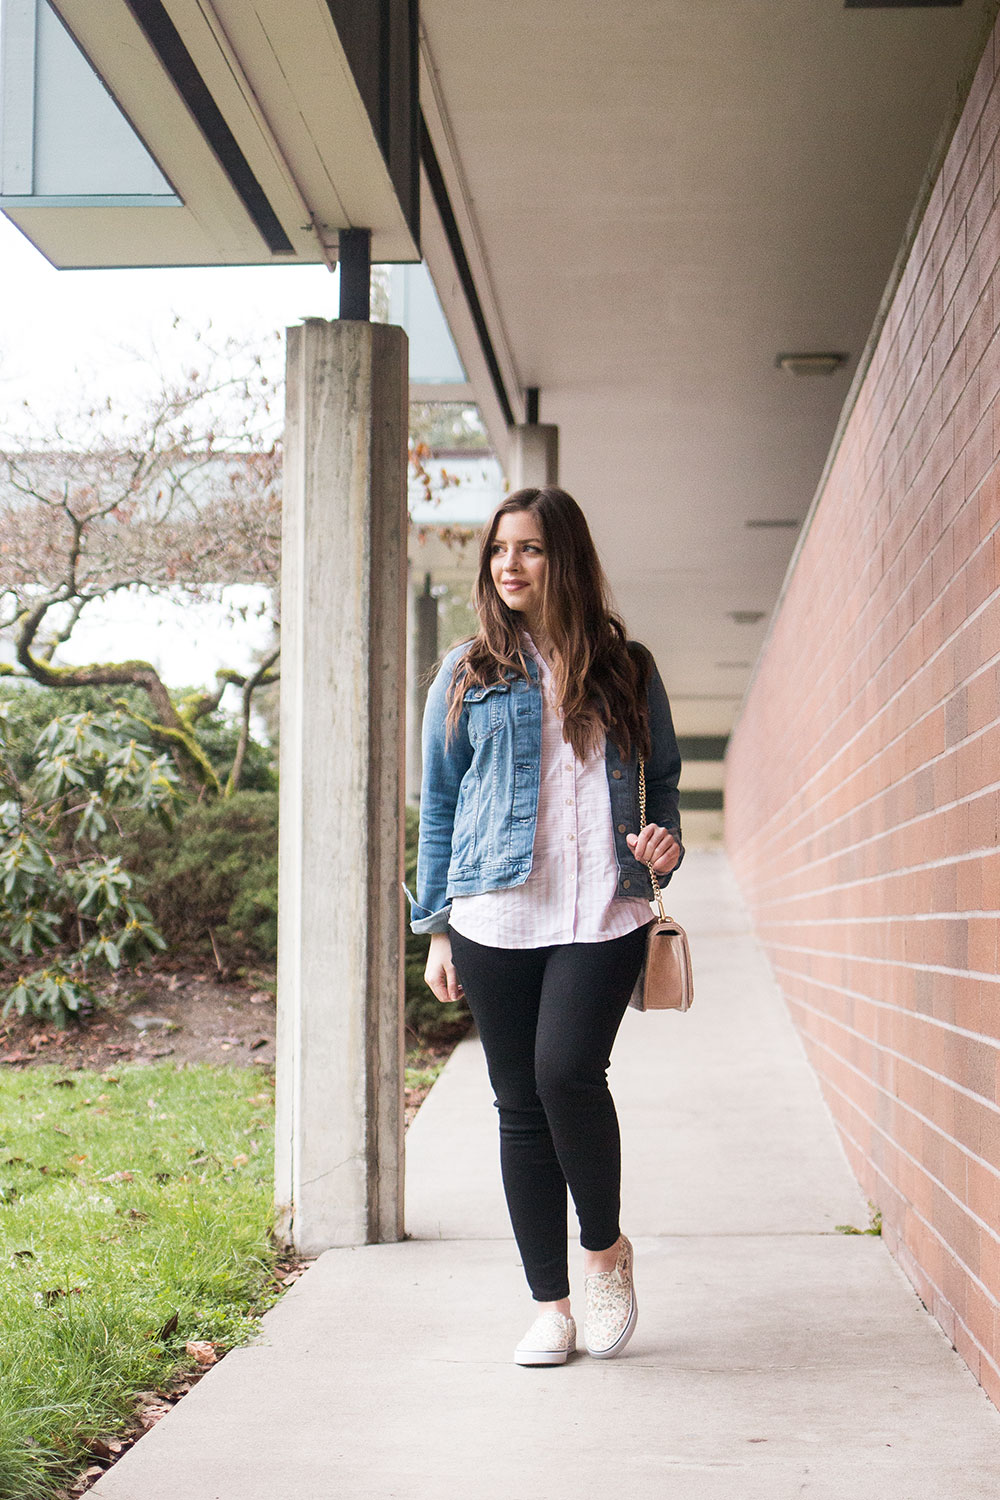 Casual Spring Outfit + Shopbop Sale Favorites – Hello Rigby